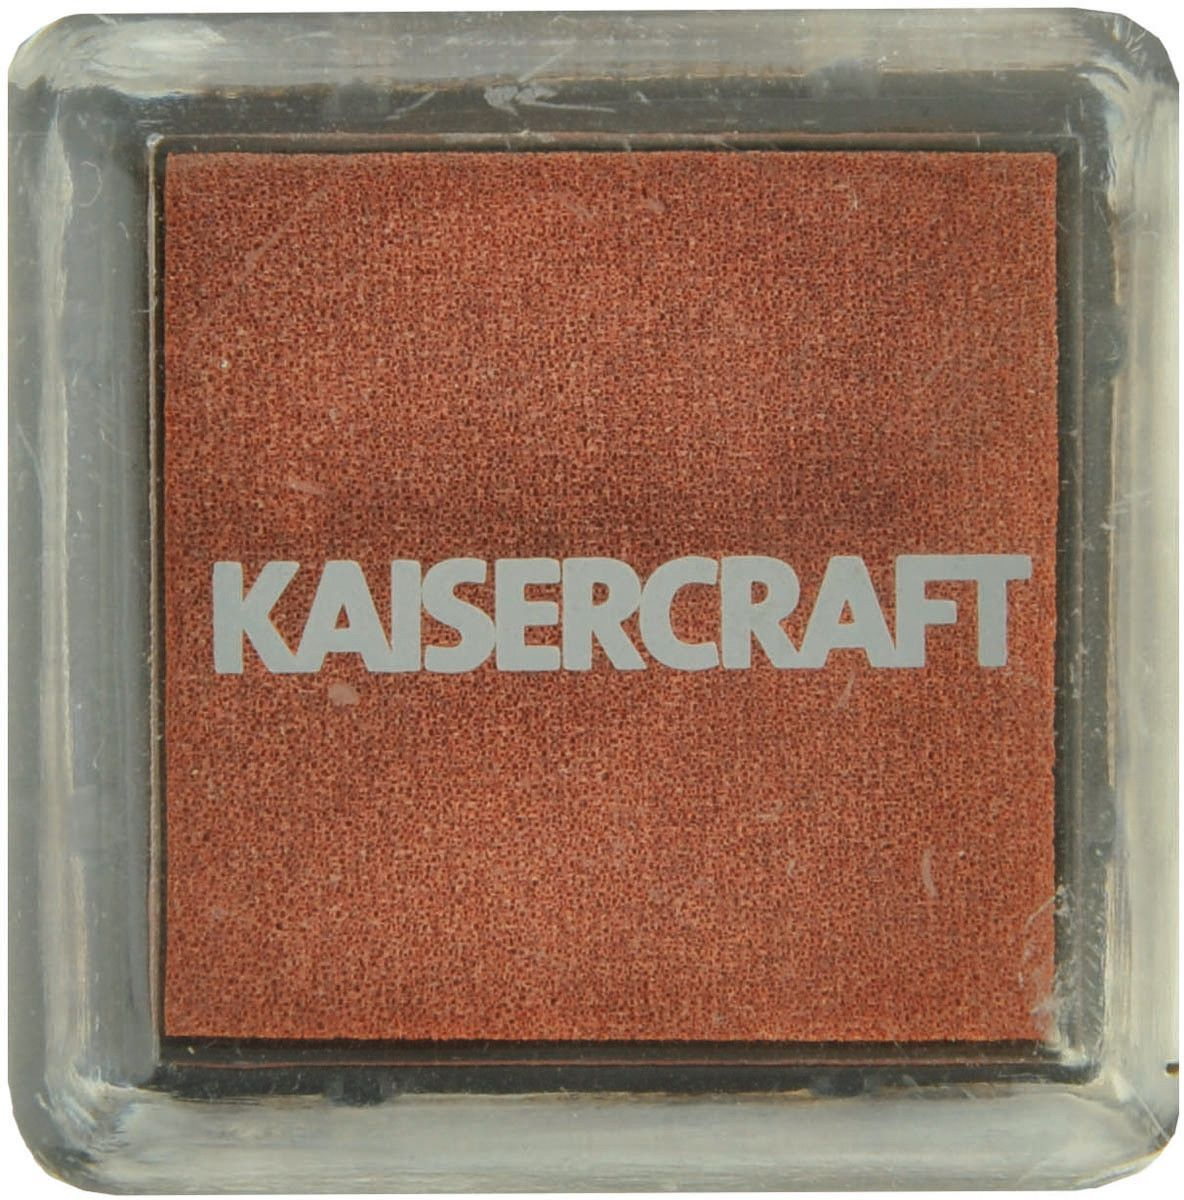 Kaisercraft Small Ink Pad - Red Gum